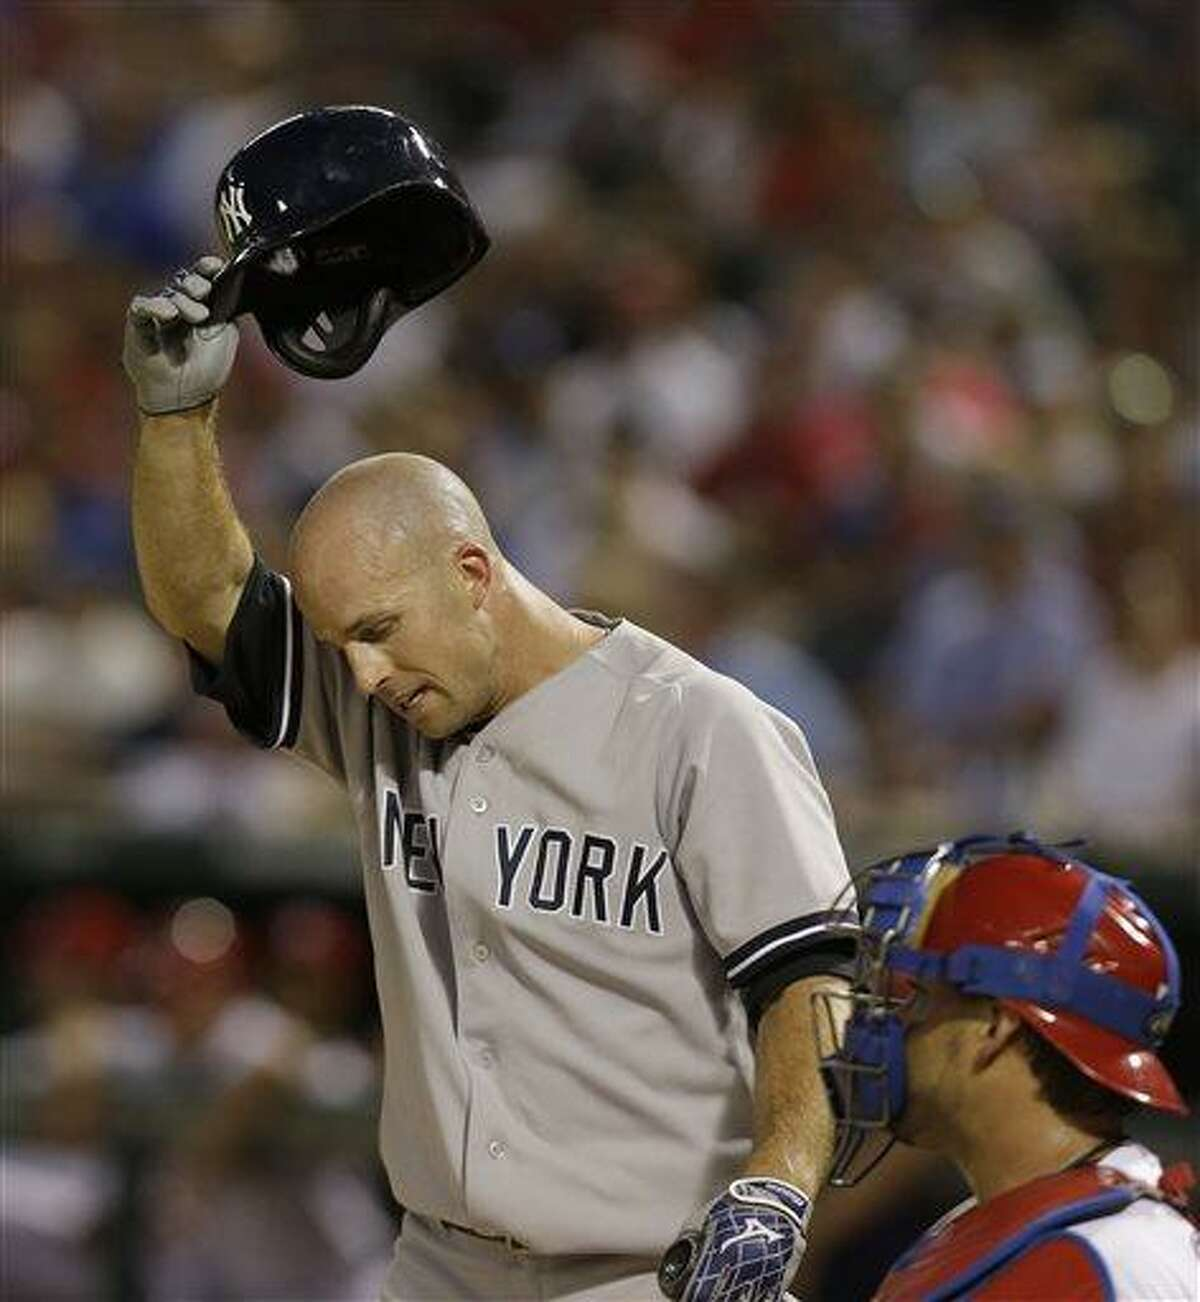 New York Yankees Brett Gardner takes off his helmet during his at bat during the ninth inning of a baseball game against the Texas Rangers Monday, July 22, 2013, in Arlington, Texas. The Ranges won 3-0. (AP Photo/LM Otero)